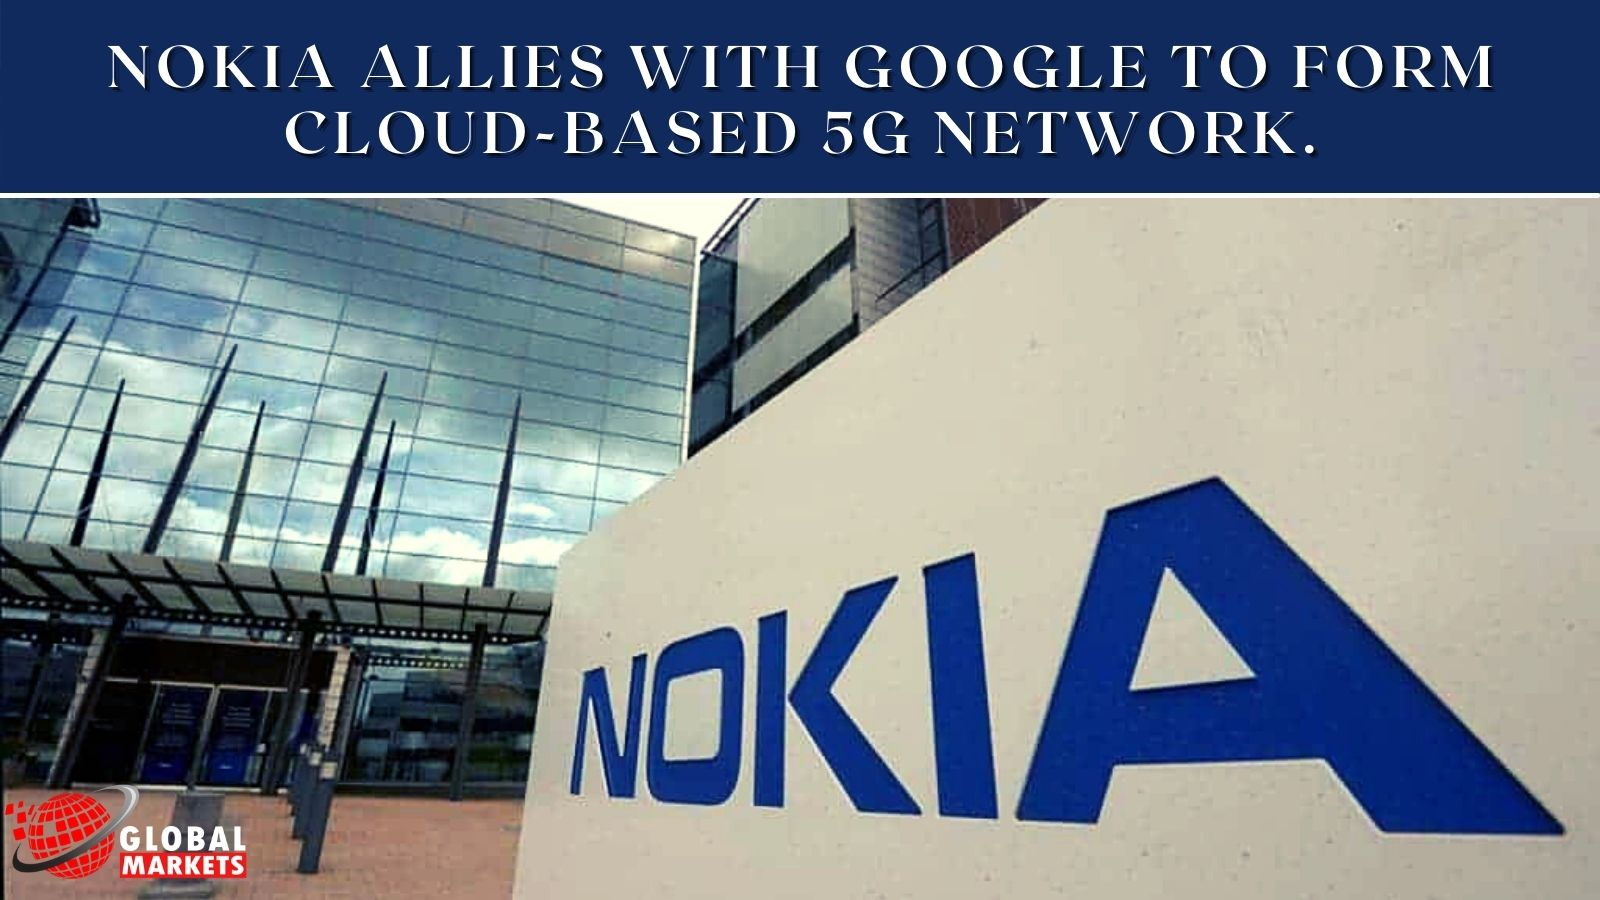 Nokia Allies With Google To Form Cloud-Based 5G Network.